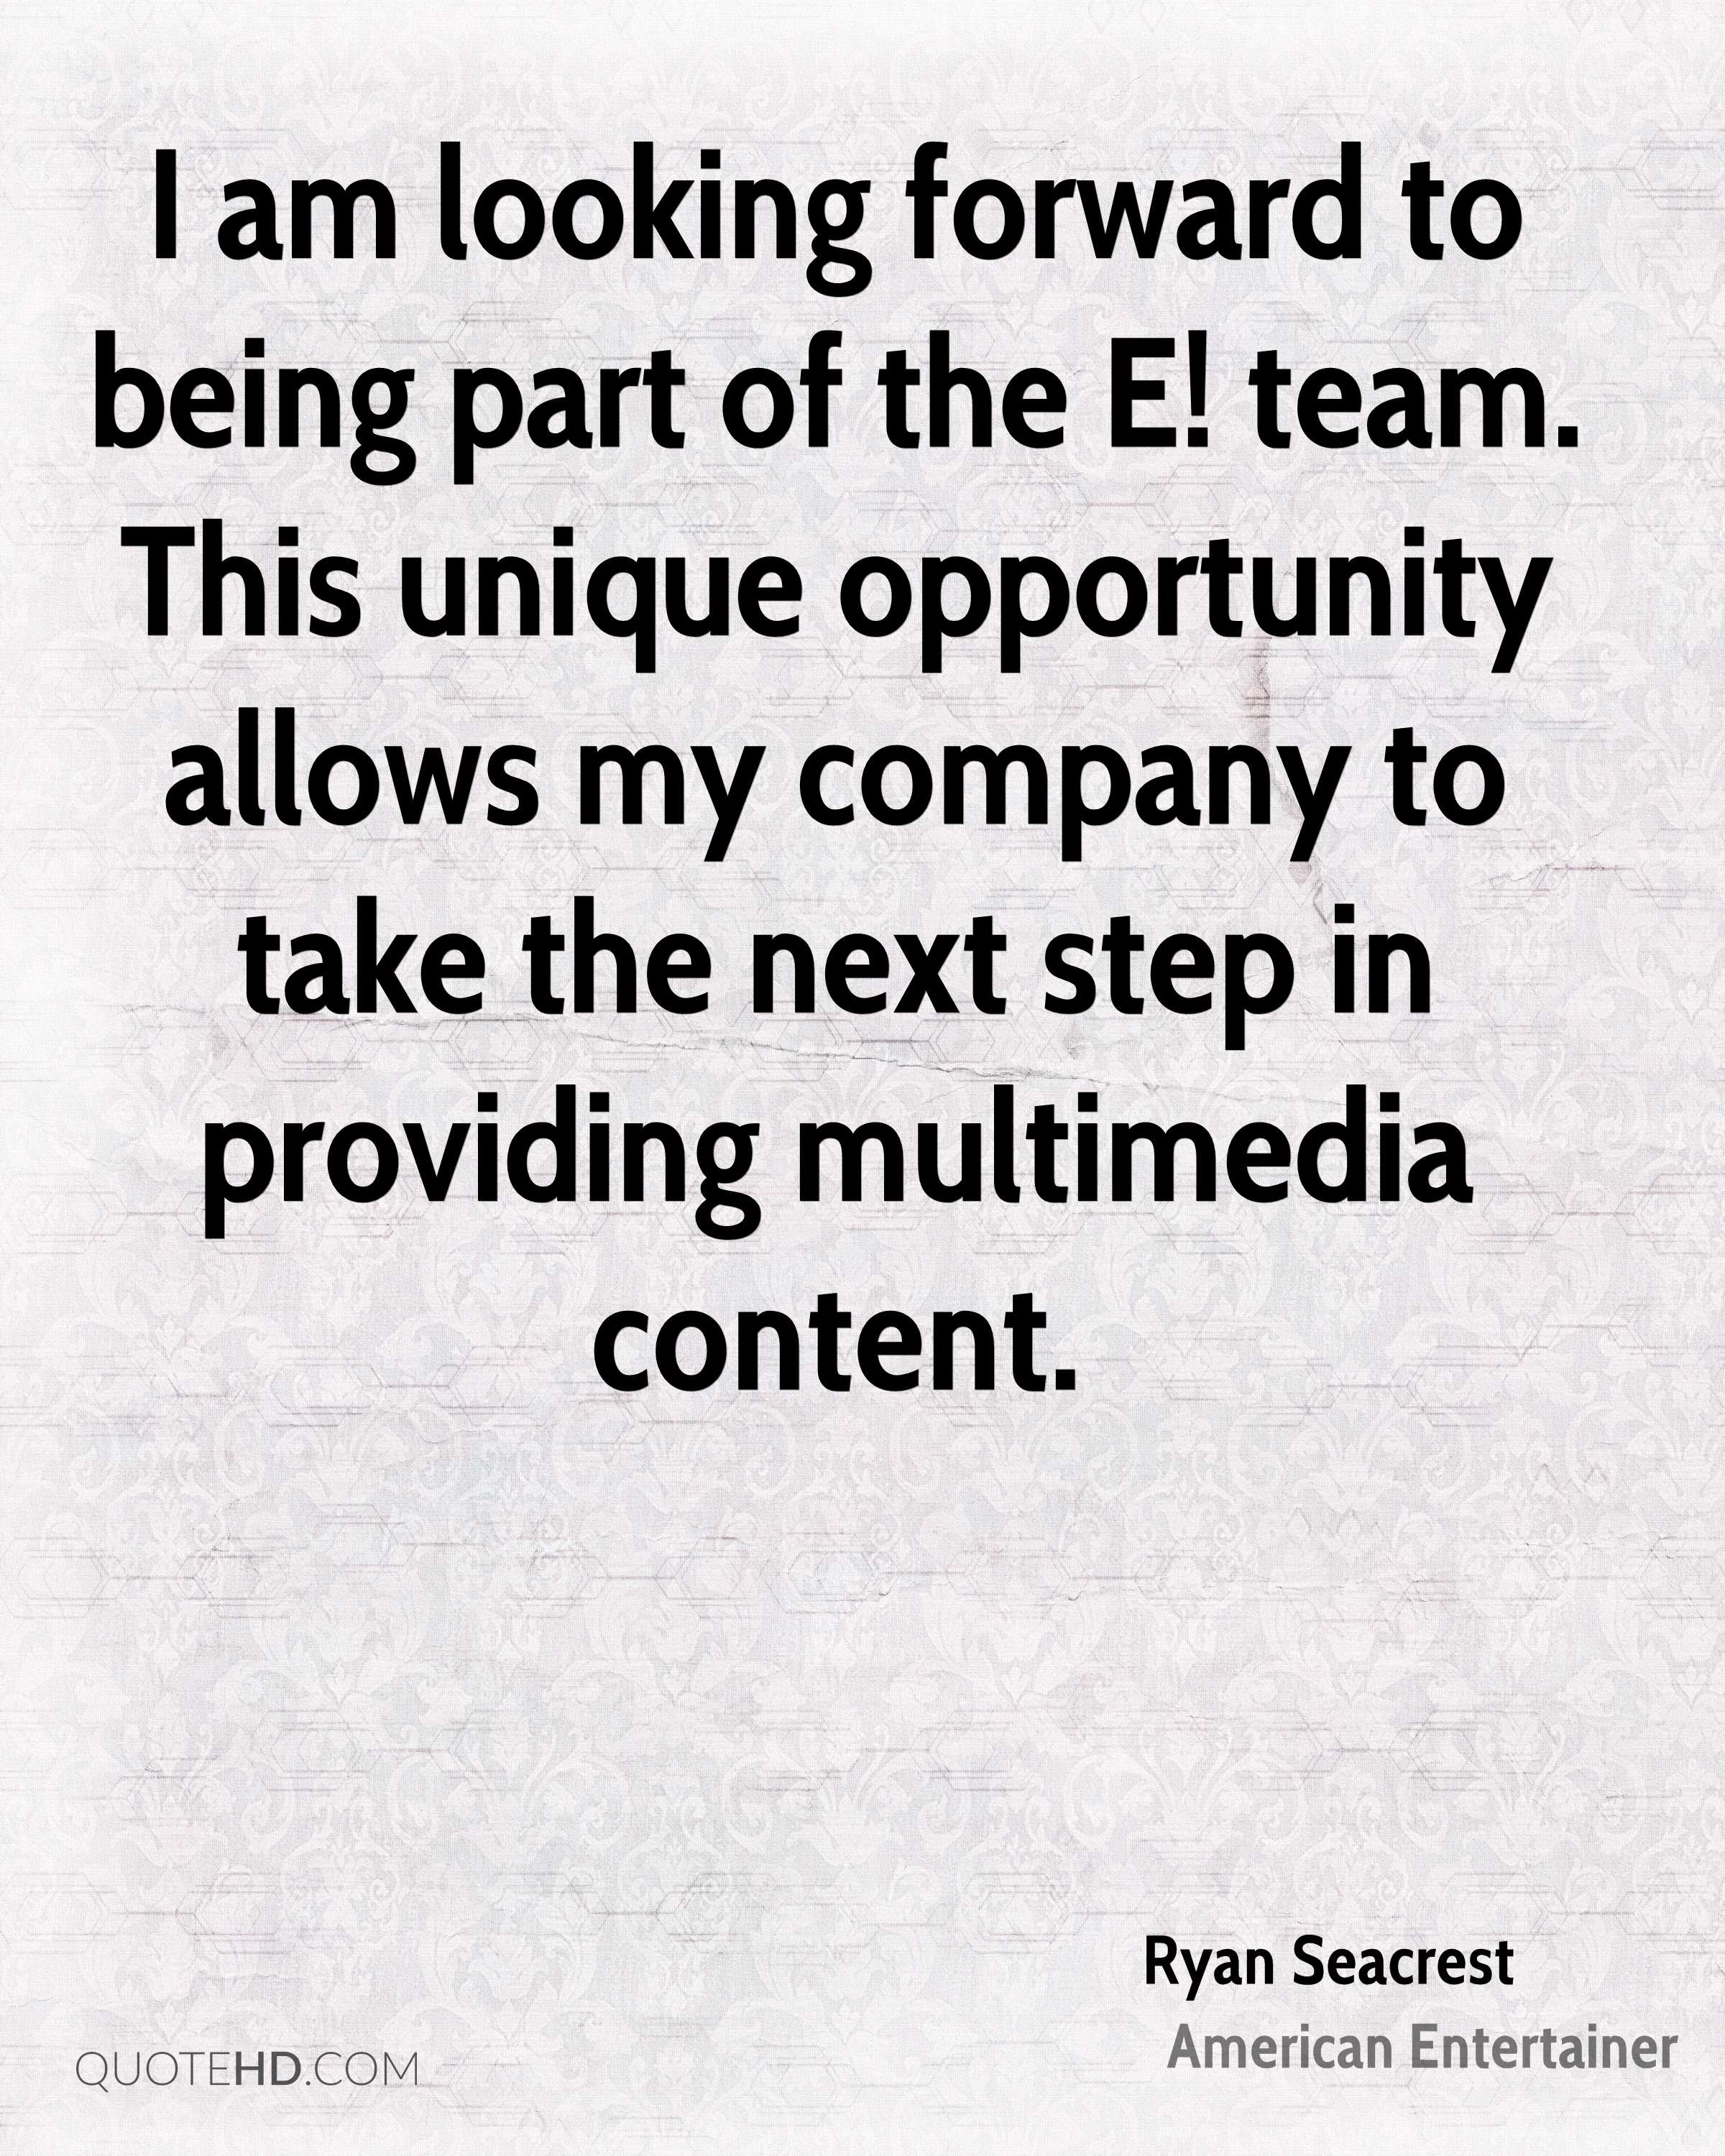 I am looking forward to being part of the E! team. This unique opportunity allows my company to take the next step in providing multimedia content.